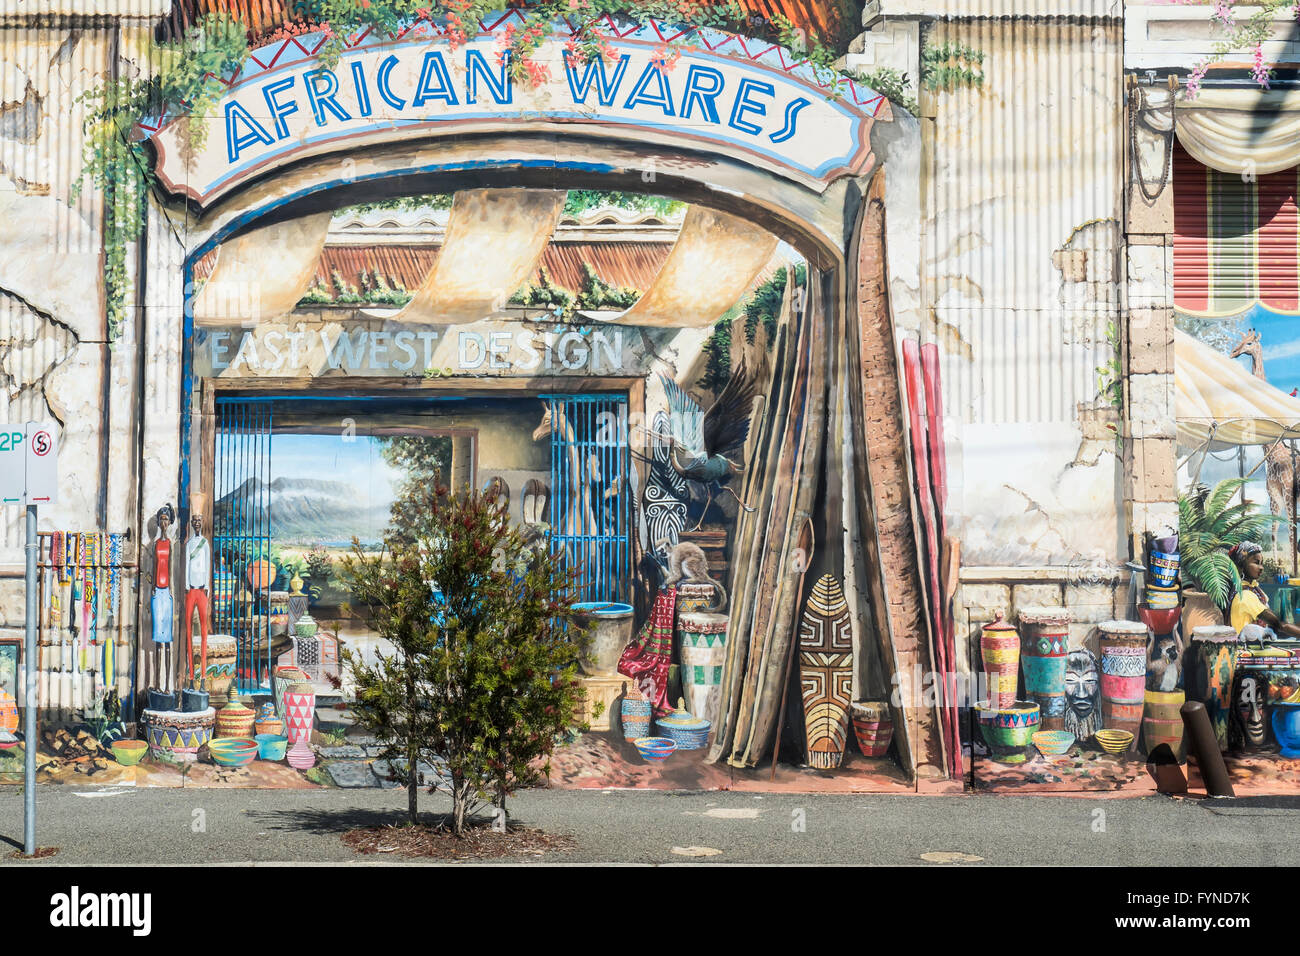 Painted Mural Frontage, East West Design, South Terrace, South Freemantle, Perth, Western Australia - Stock Image